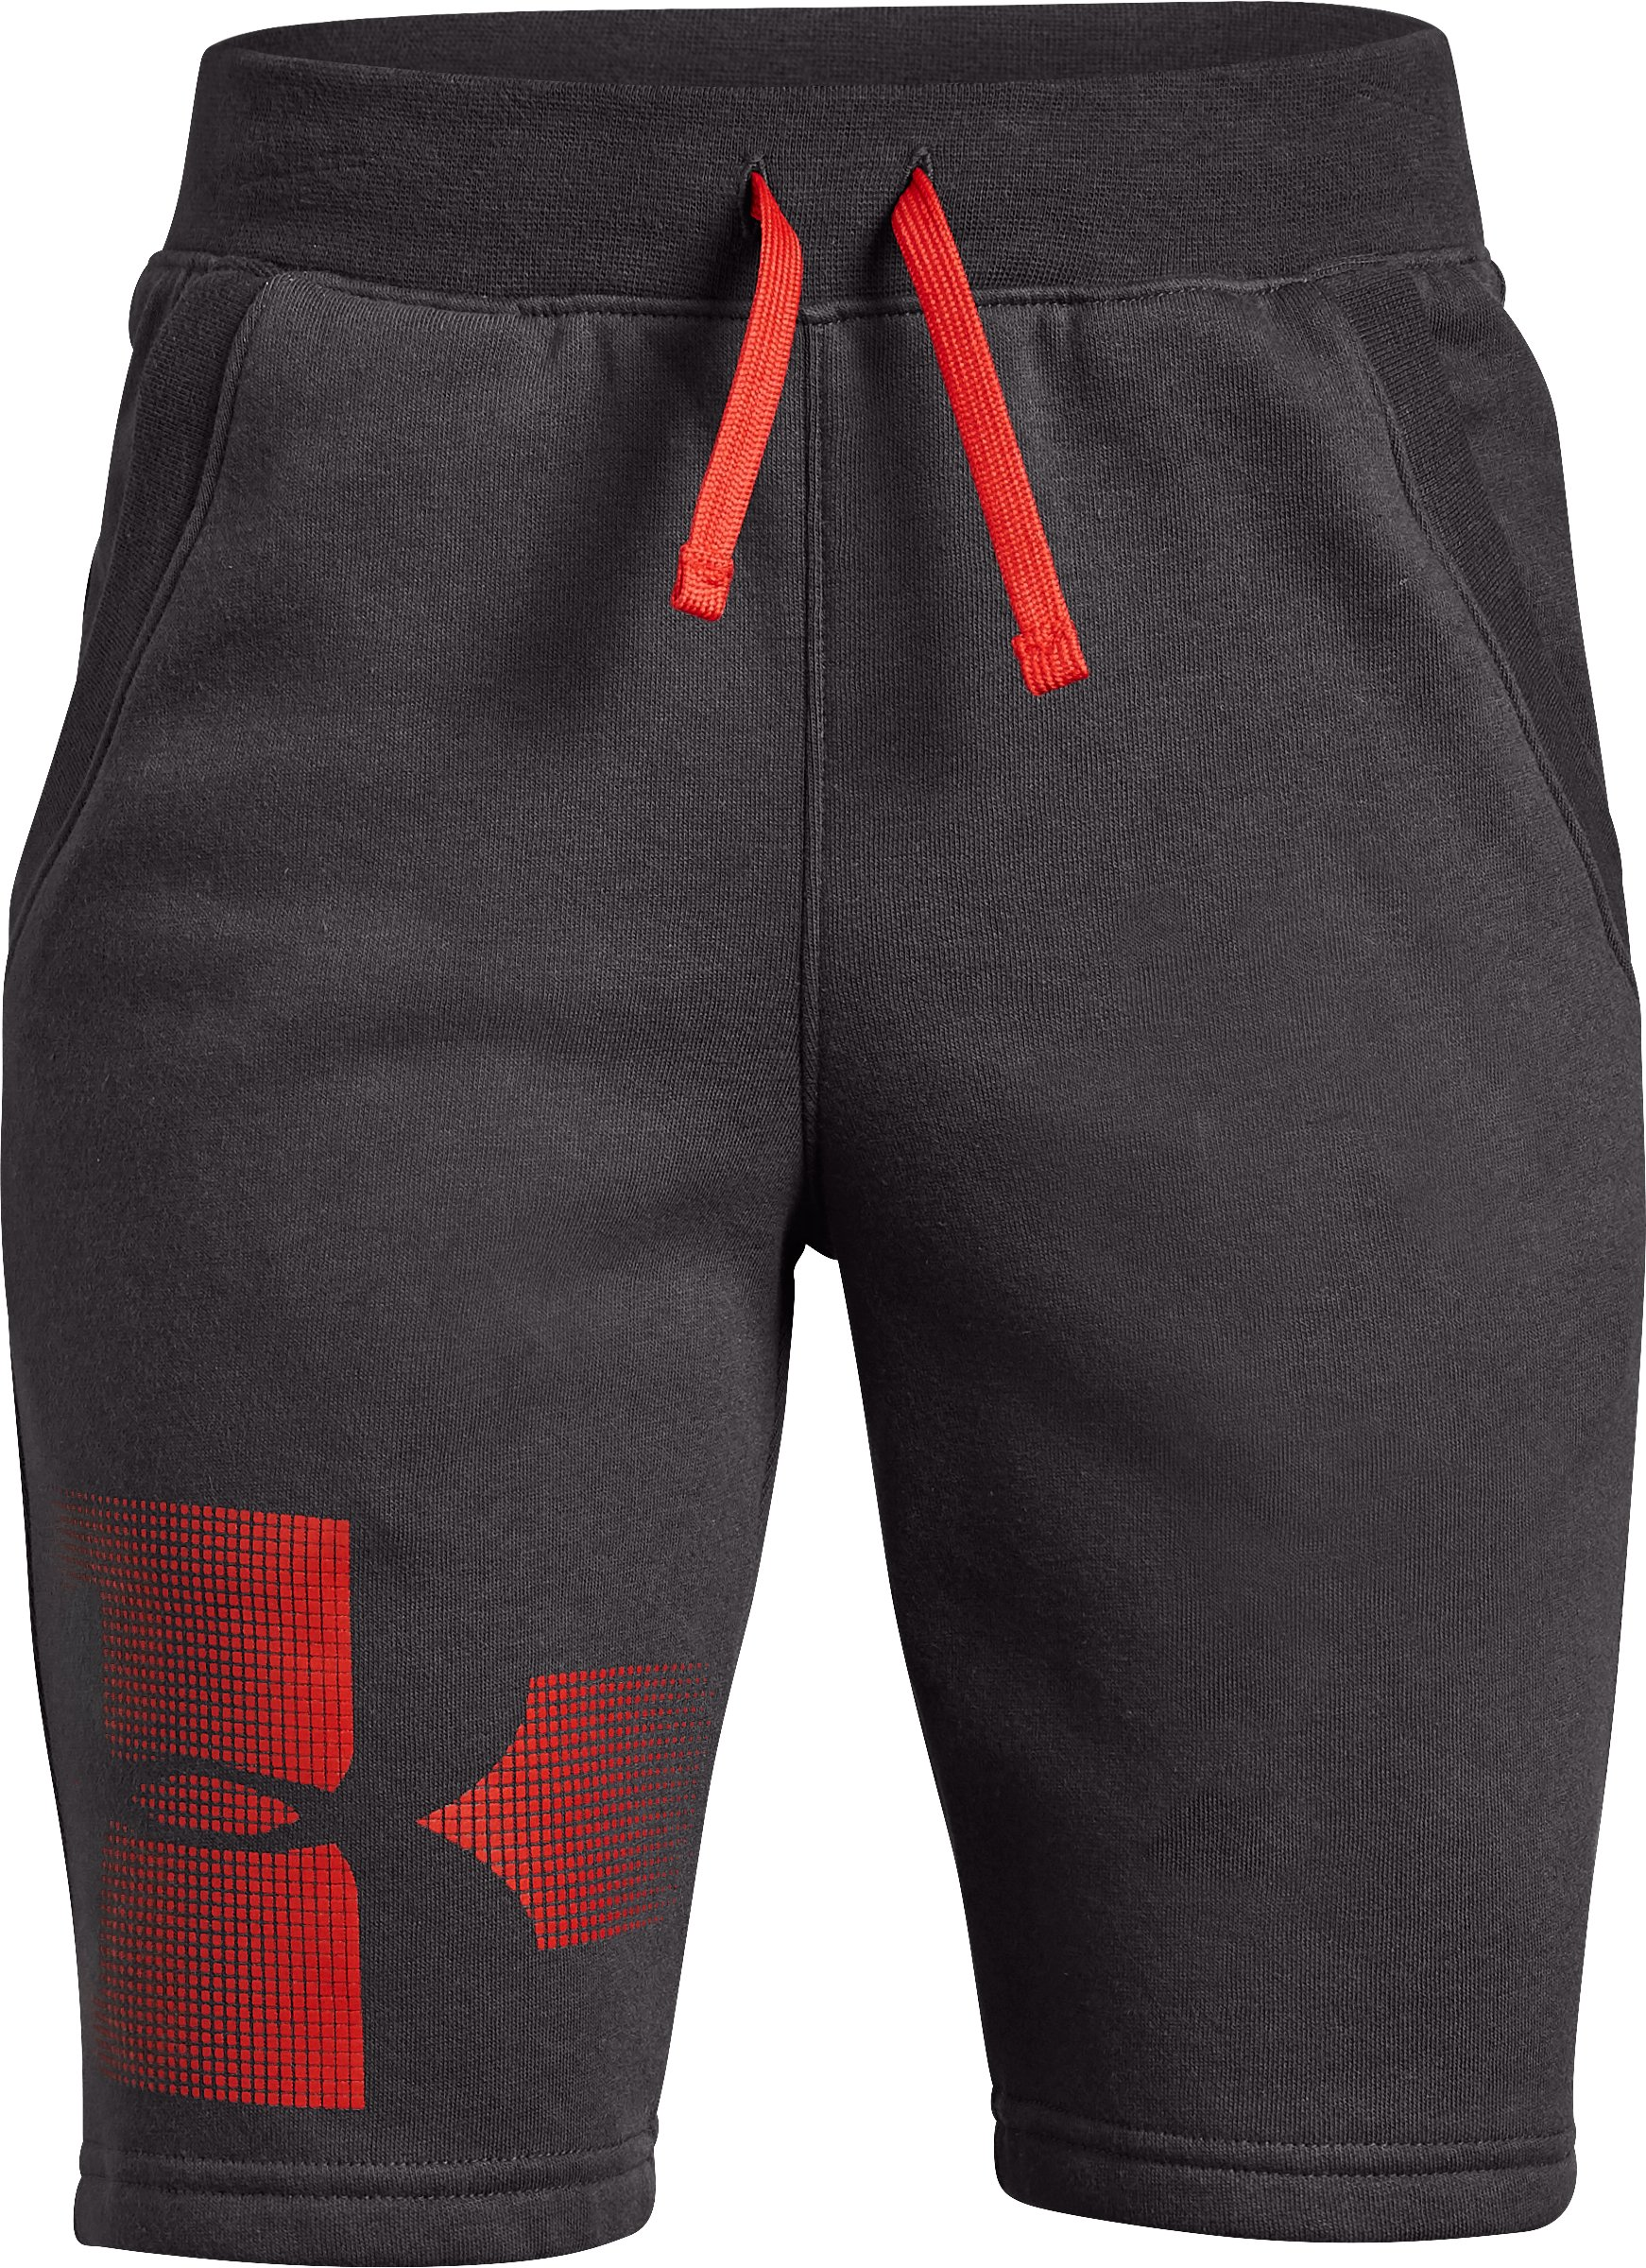 Boys' UA Rival Fleece Shorts - Graphic, Charcoal,